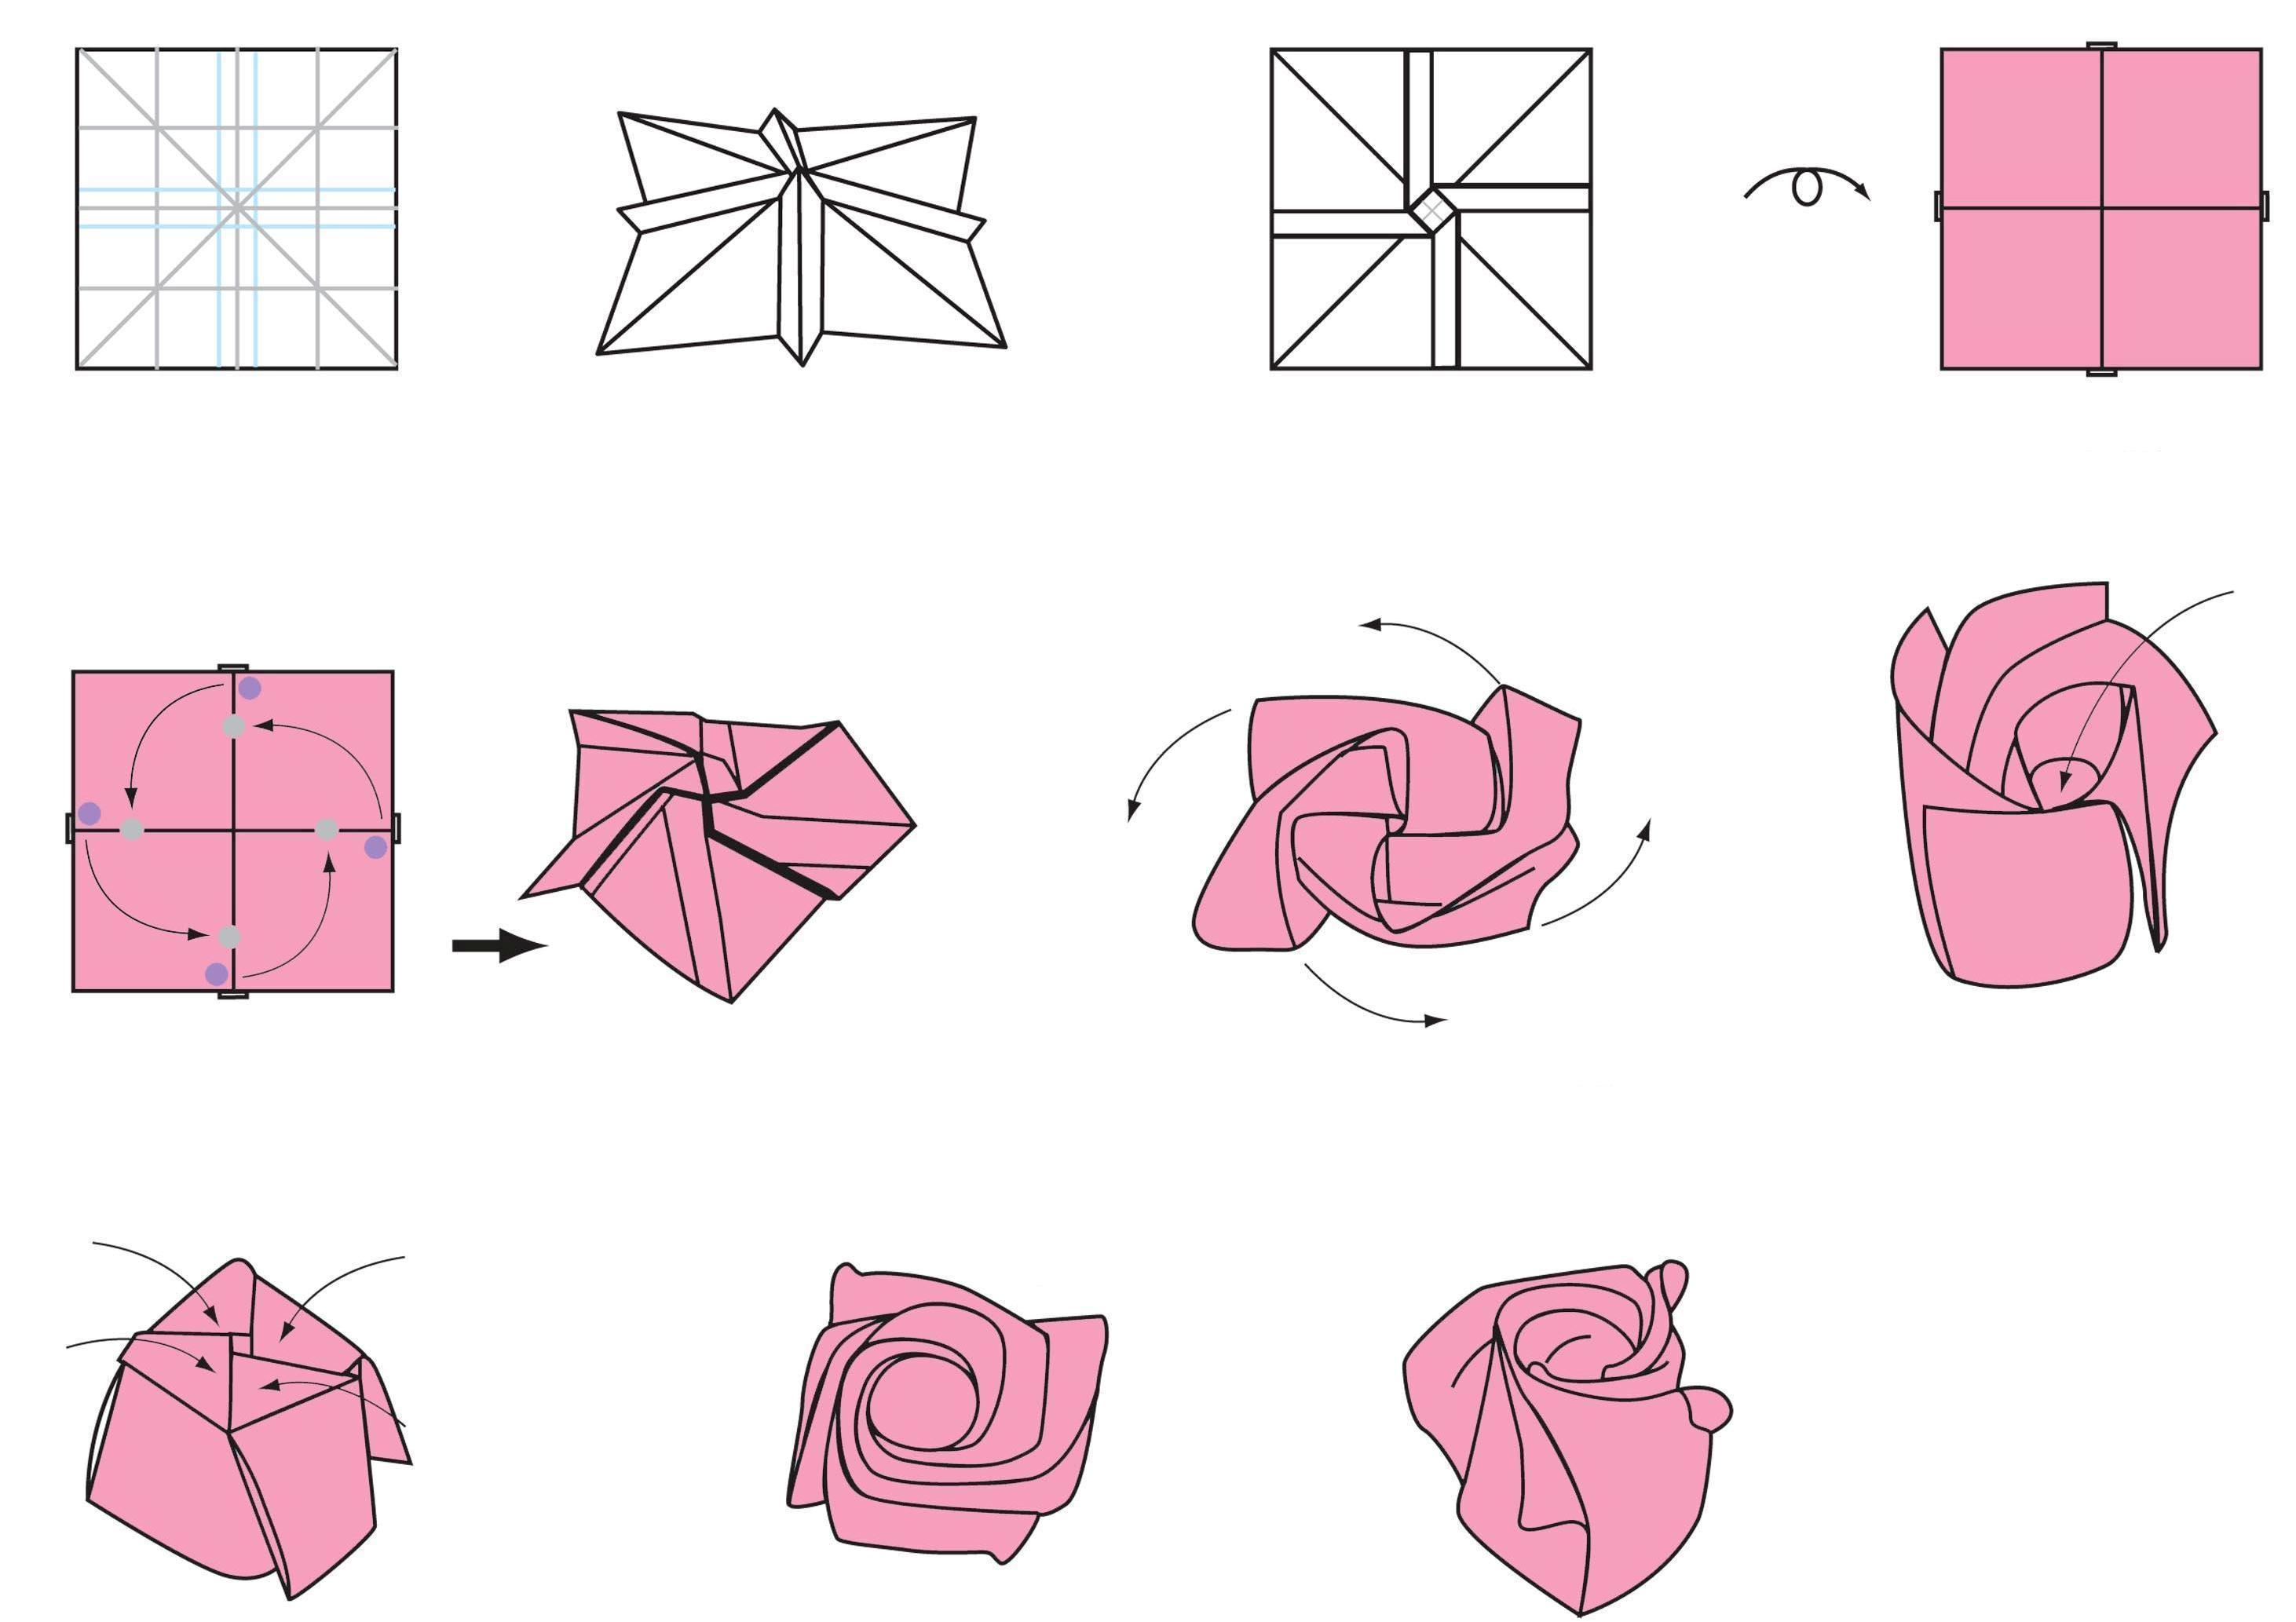 This is how to make an origami